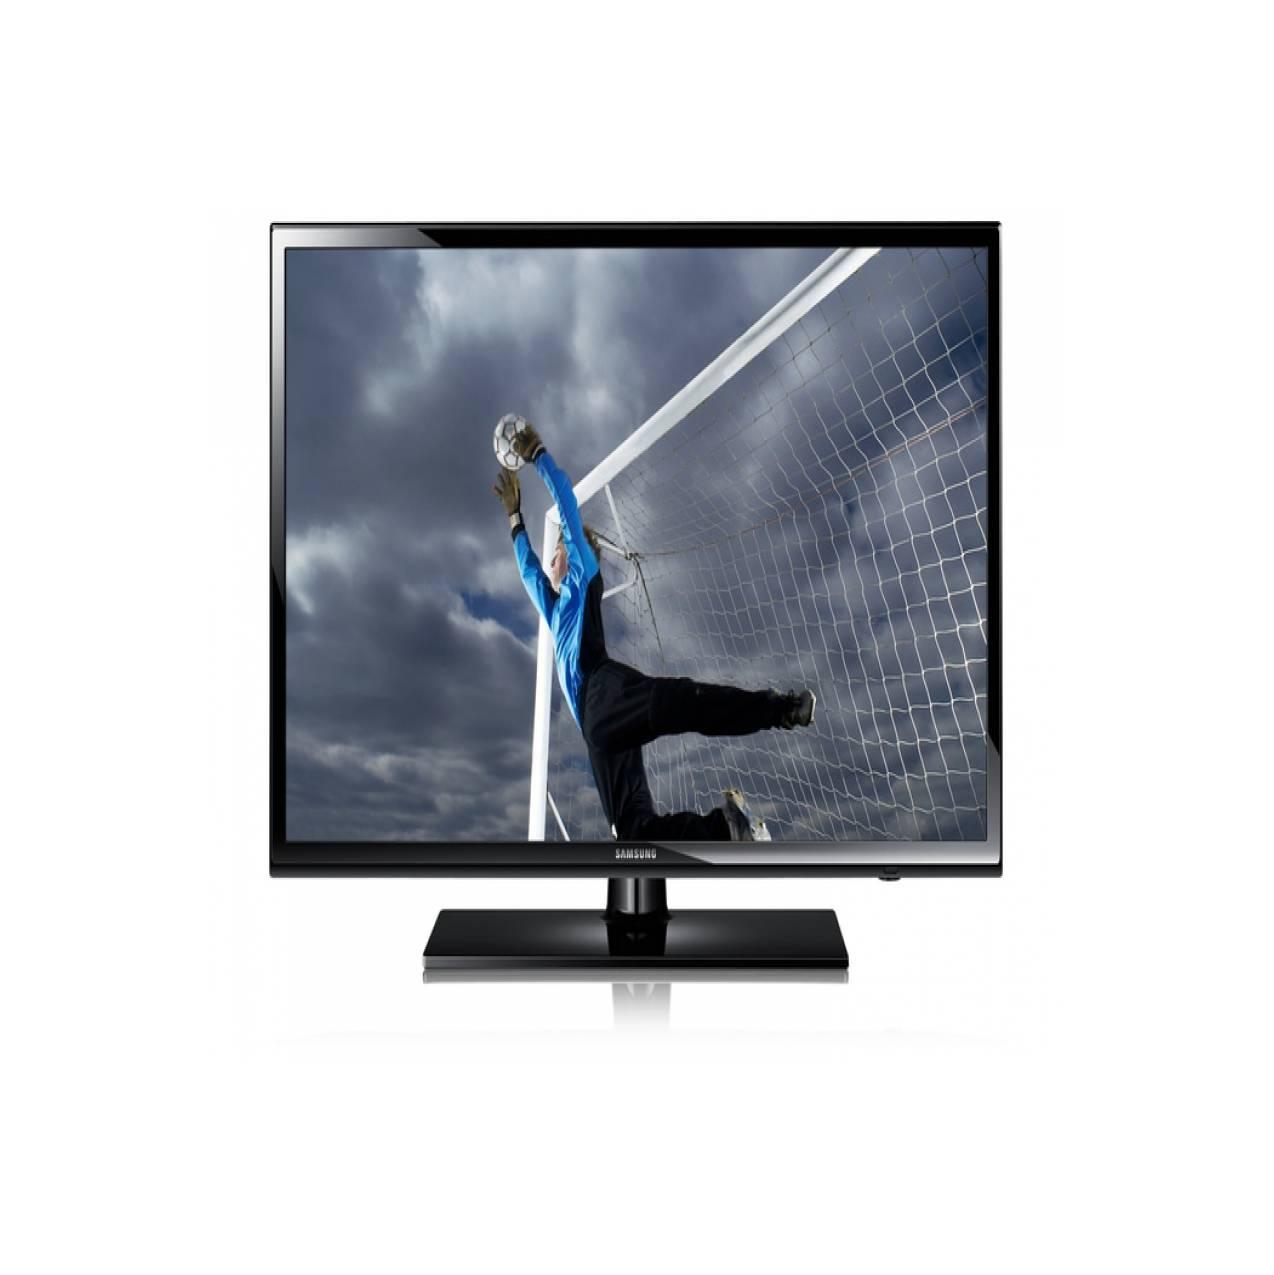 SAMSUNG LED TV 32 Inch - UA32FH4003, DIGITAL HARGA MURAH